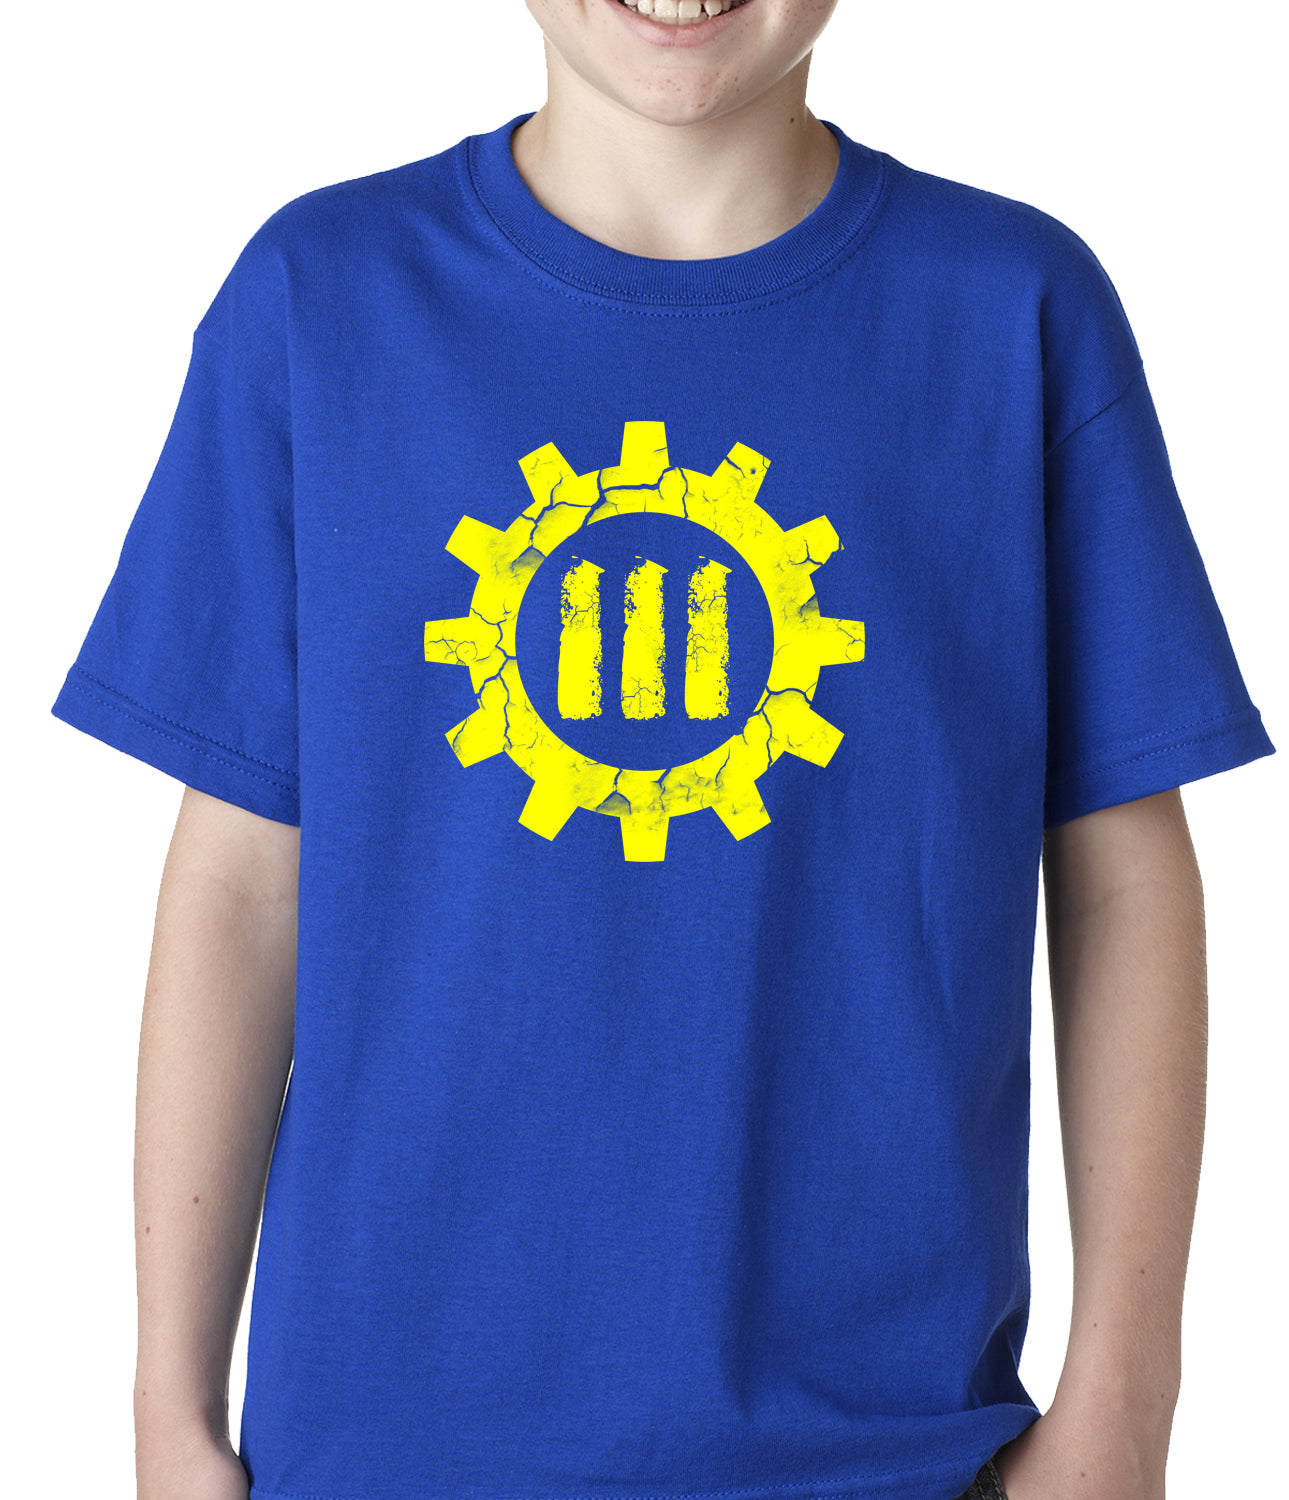 Gear 111 Kids T-shirt